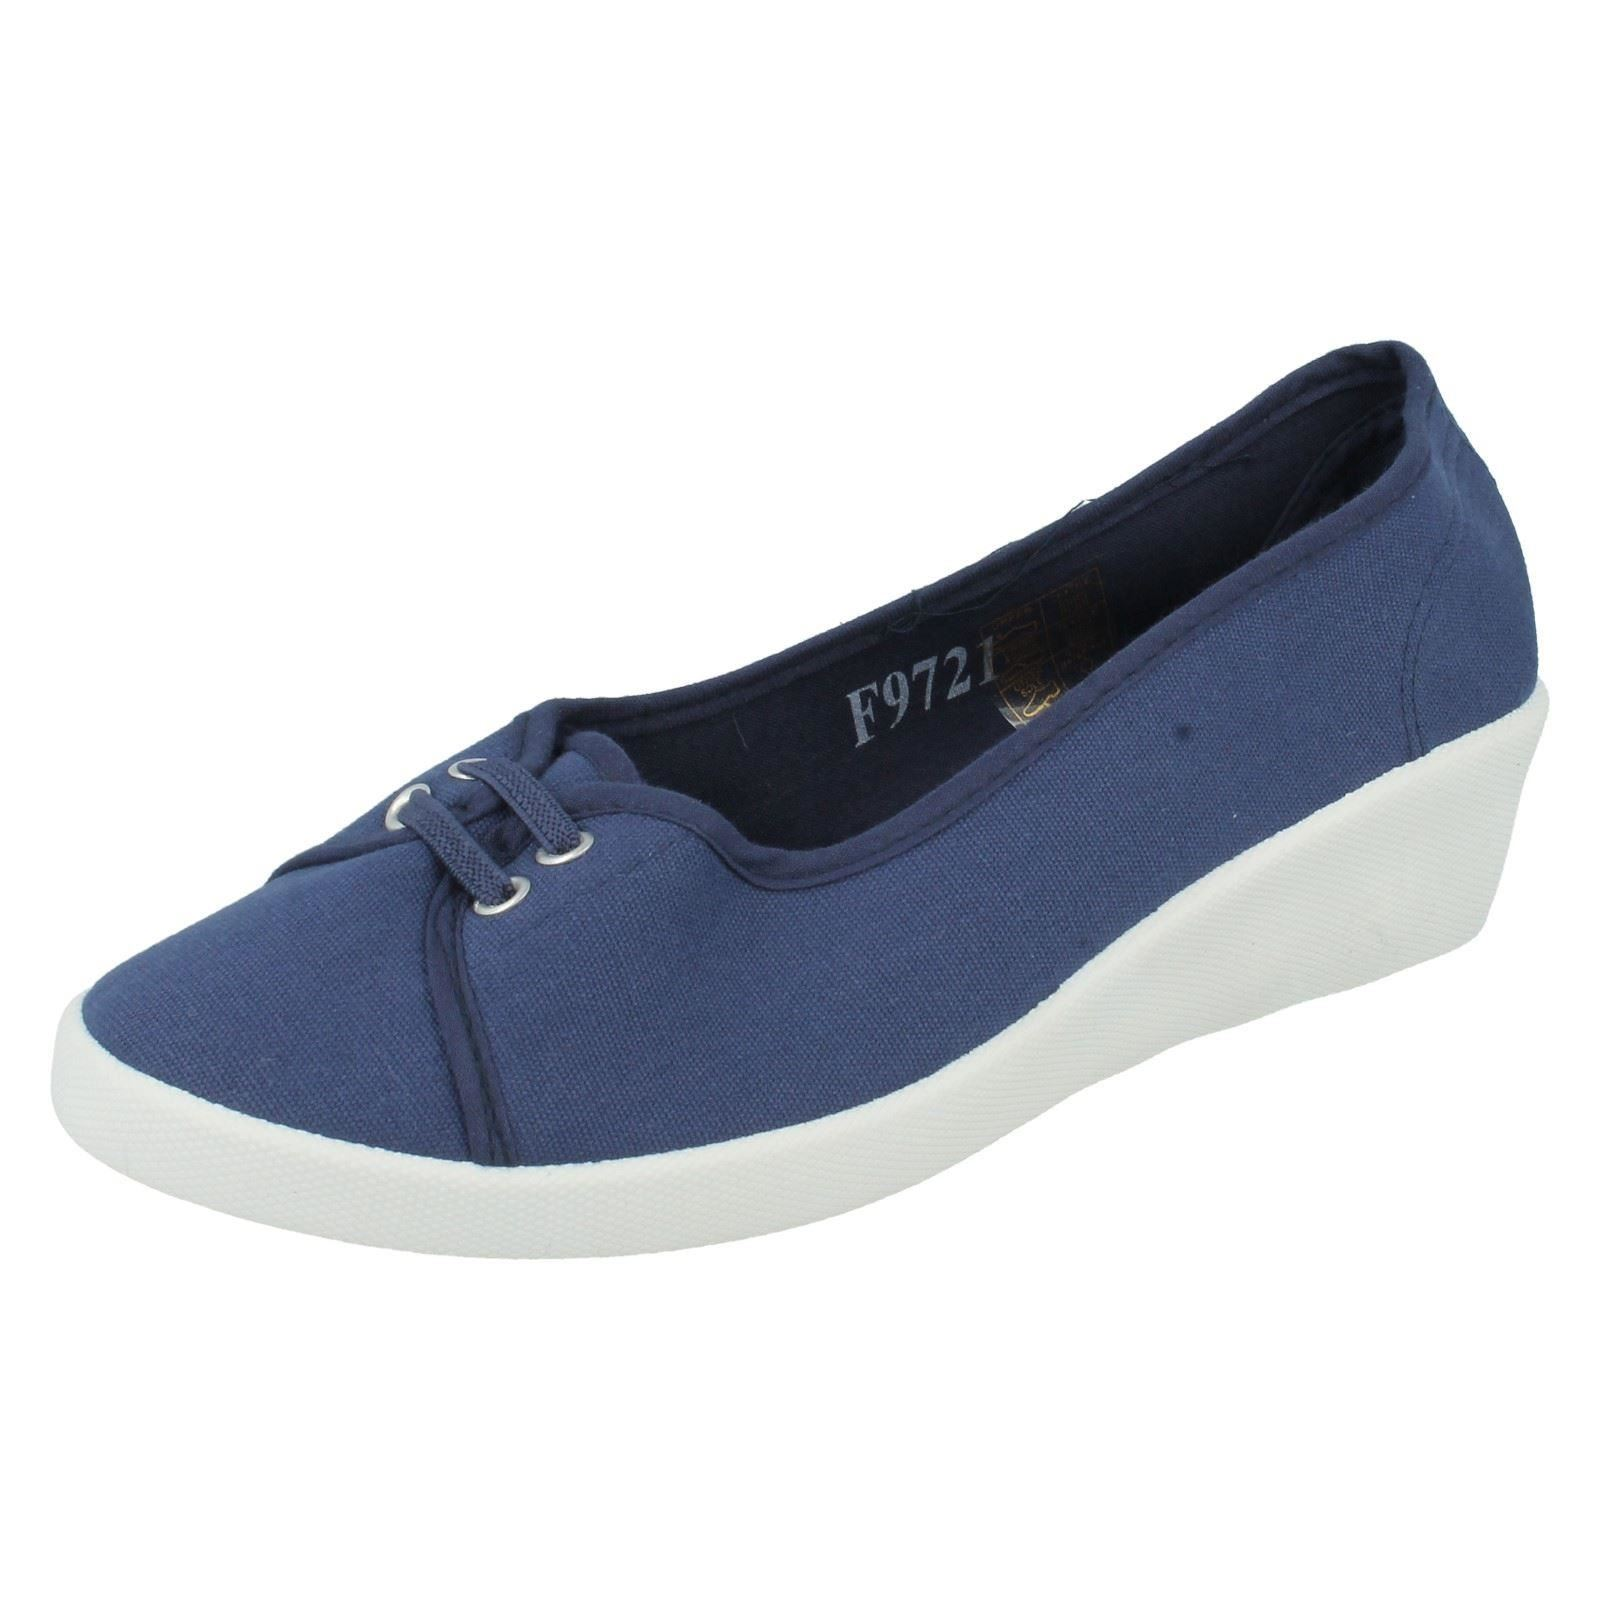 s spoton lace up wedge canvas shoes f9721 ebay